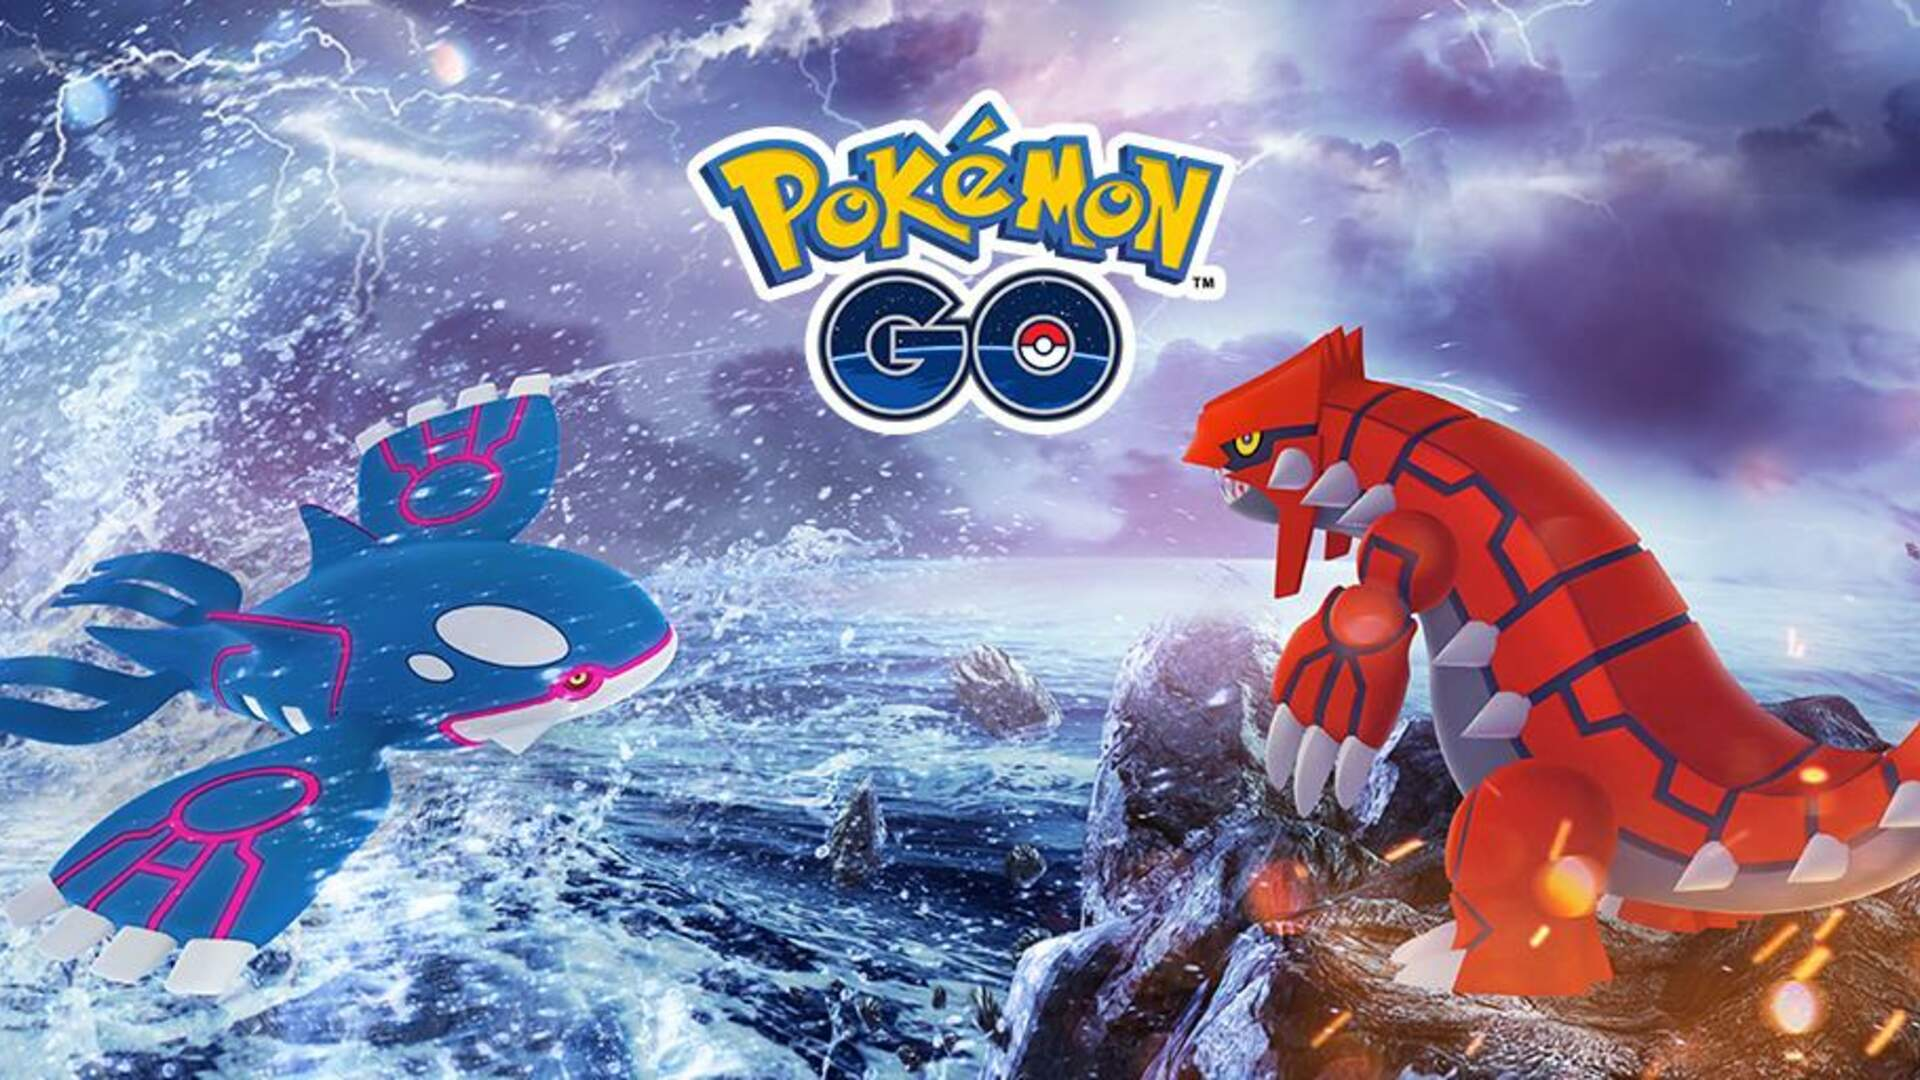 Pokemon Go Hoenn Celebration - Shiny Zigzagoon, Team Aqua, Kyogre